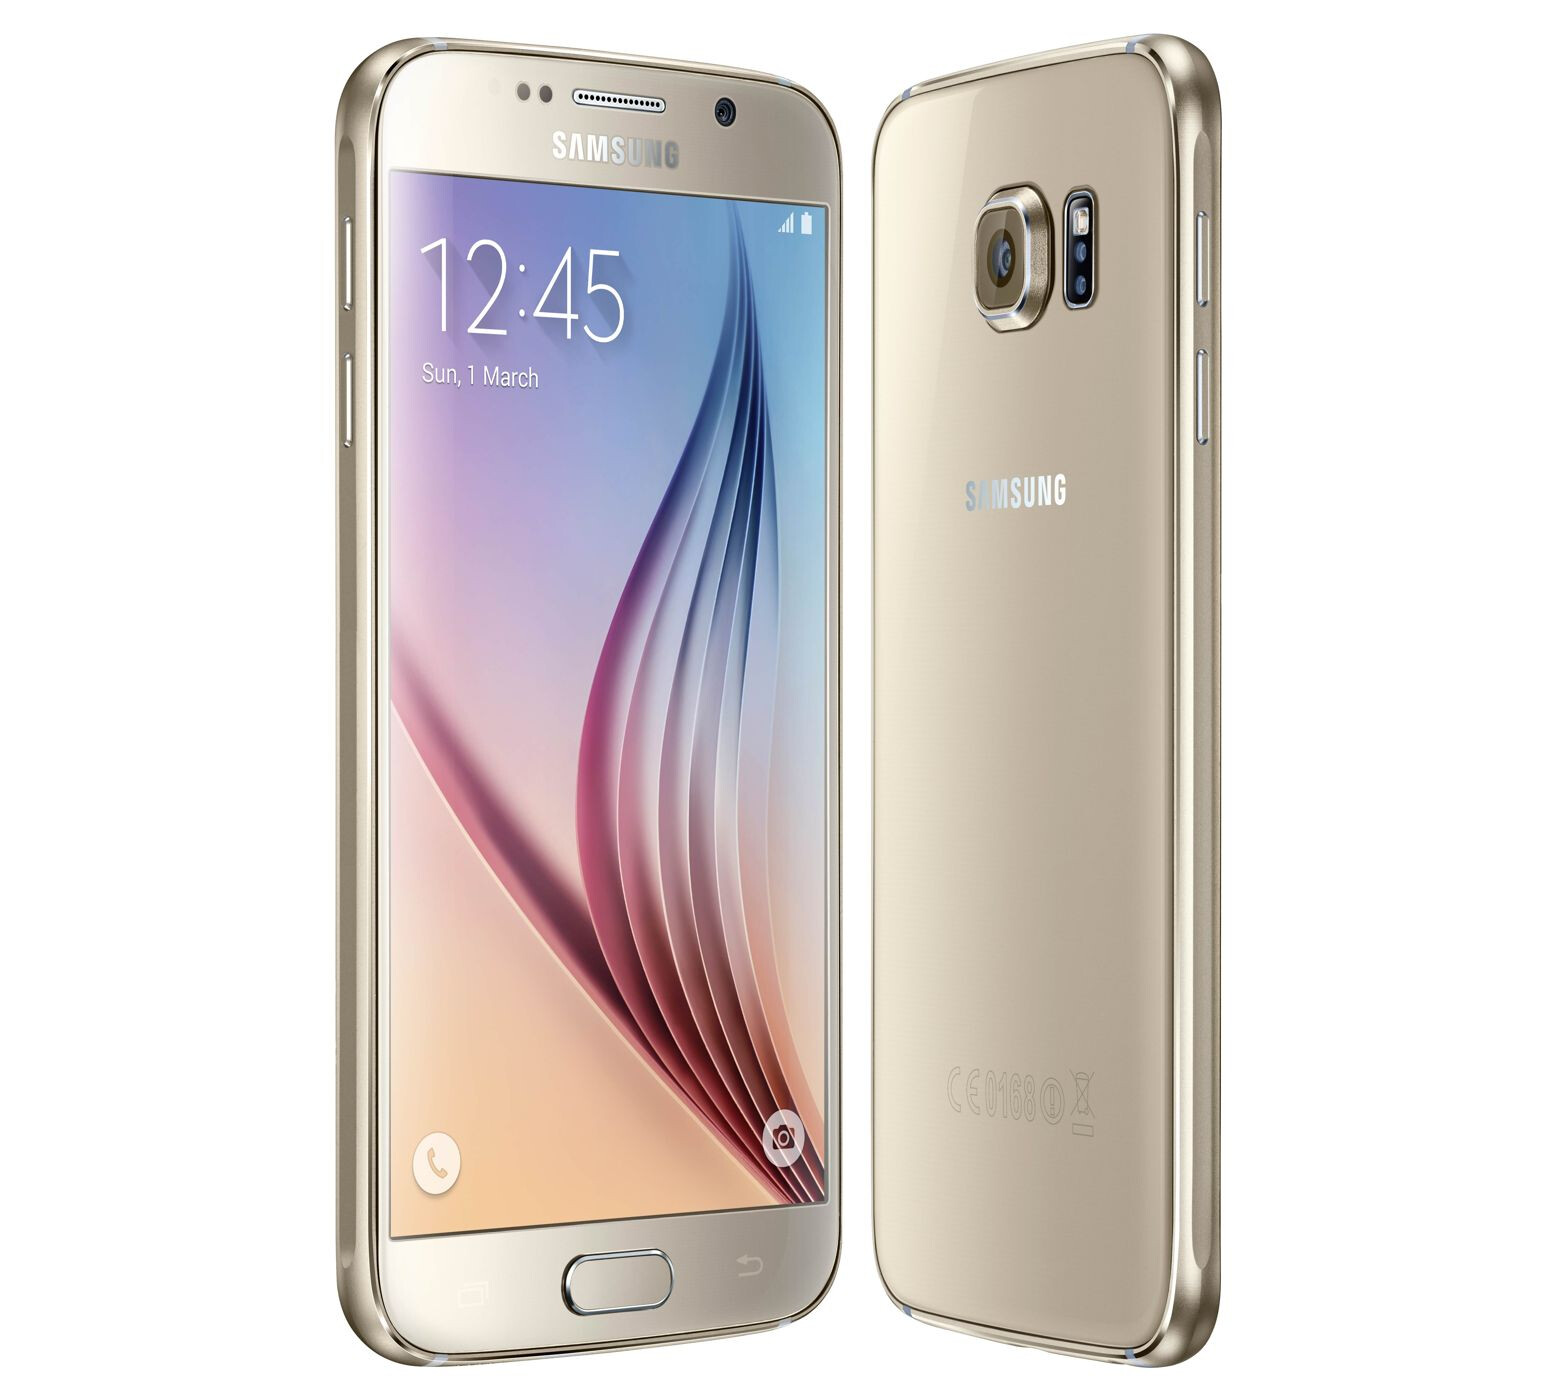 samsung galaxy s6 white and gold. samsung galaxy s6, gold platinum. - image from see all the s6 and edge color variants here which one do you like best? white y